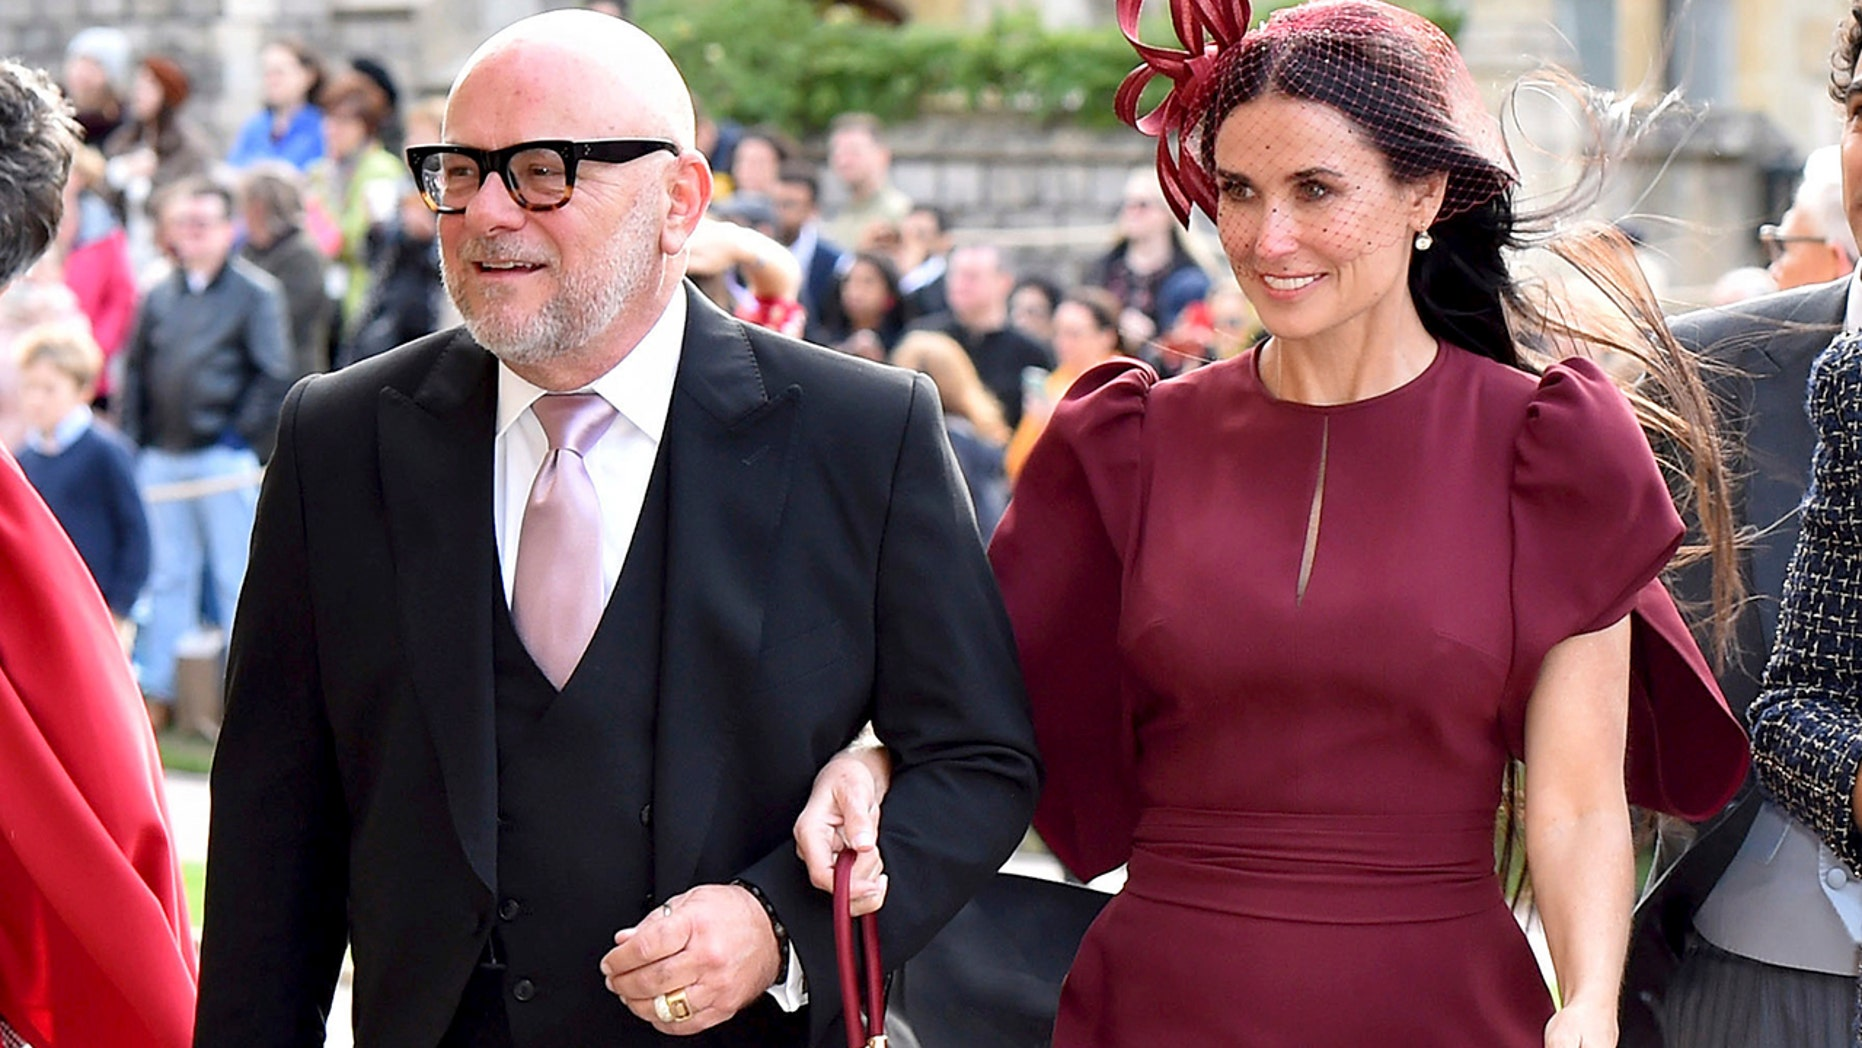 Demi Moore made her Instagram official debut after the wedding of Princess Eugenie and Jack Brooksbank in Windsor, England. (Matt Crossick, Pool via AP)<br>